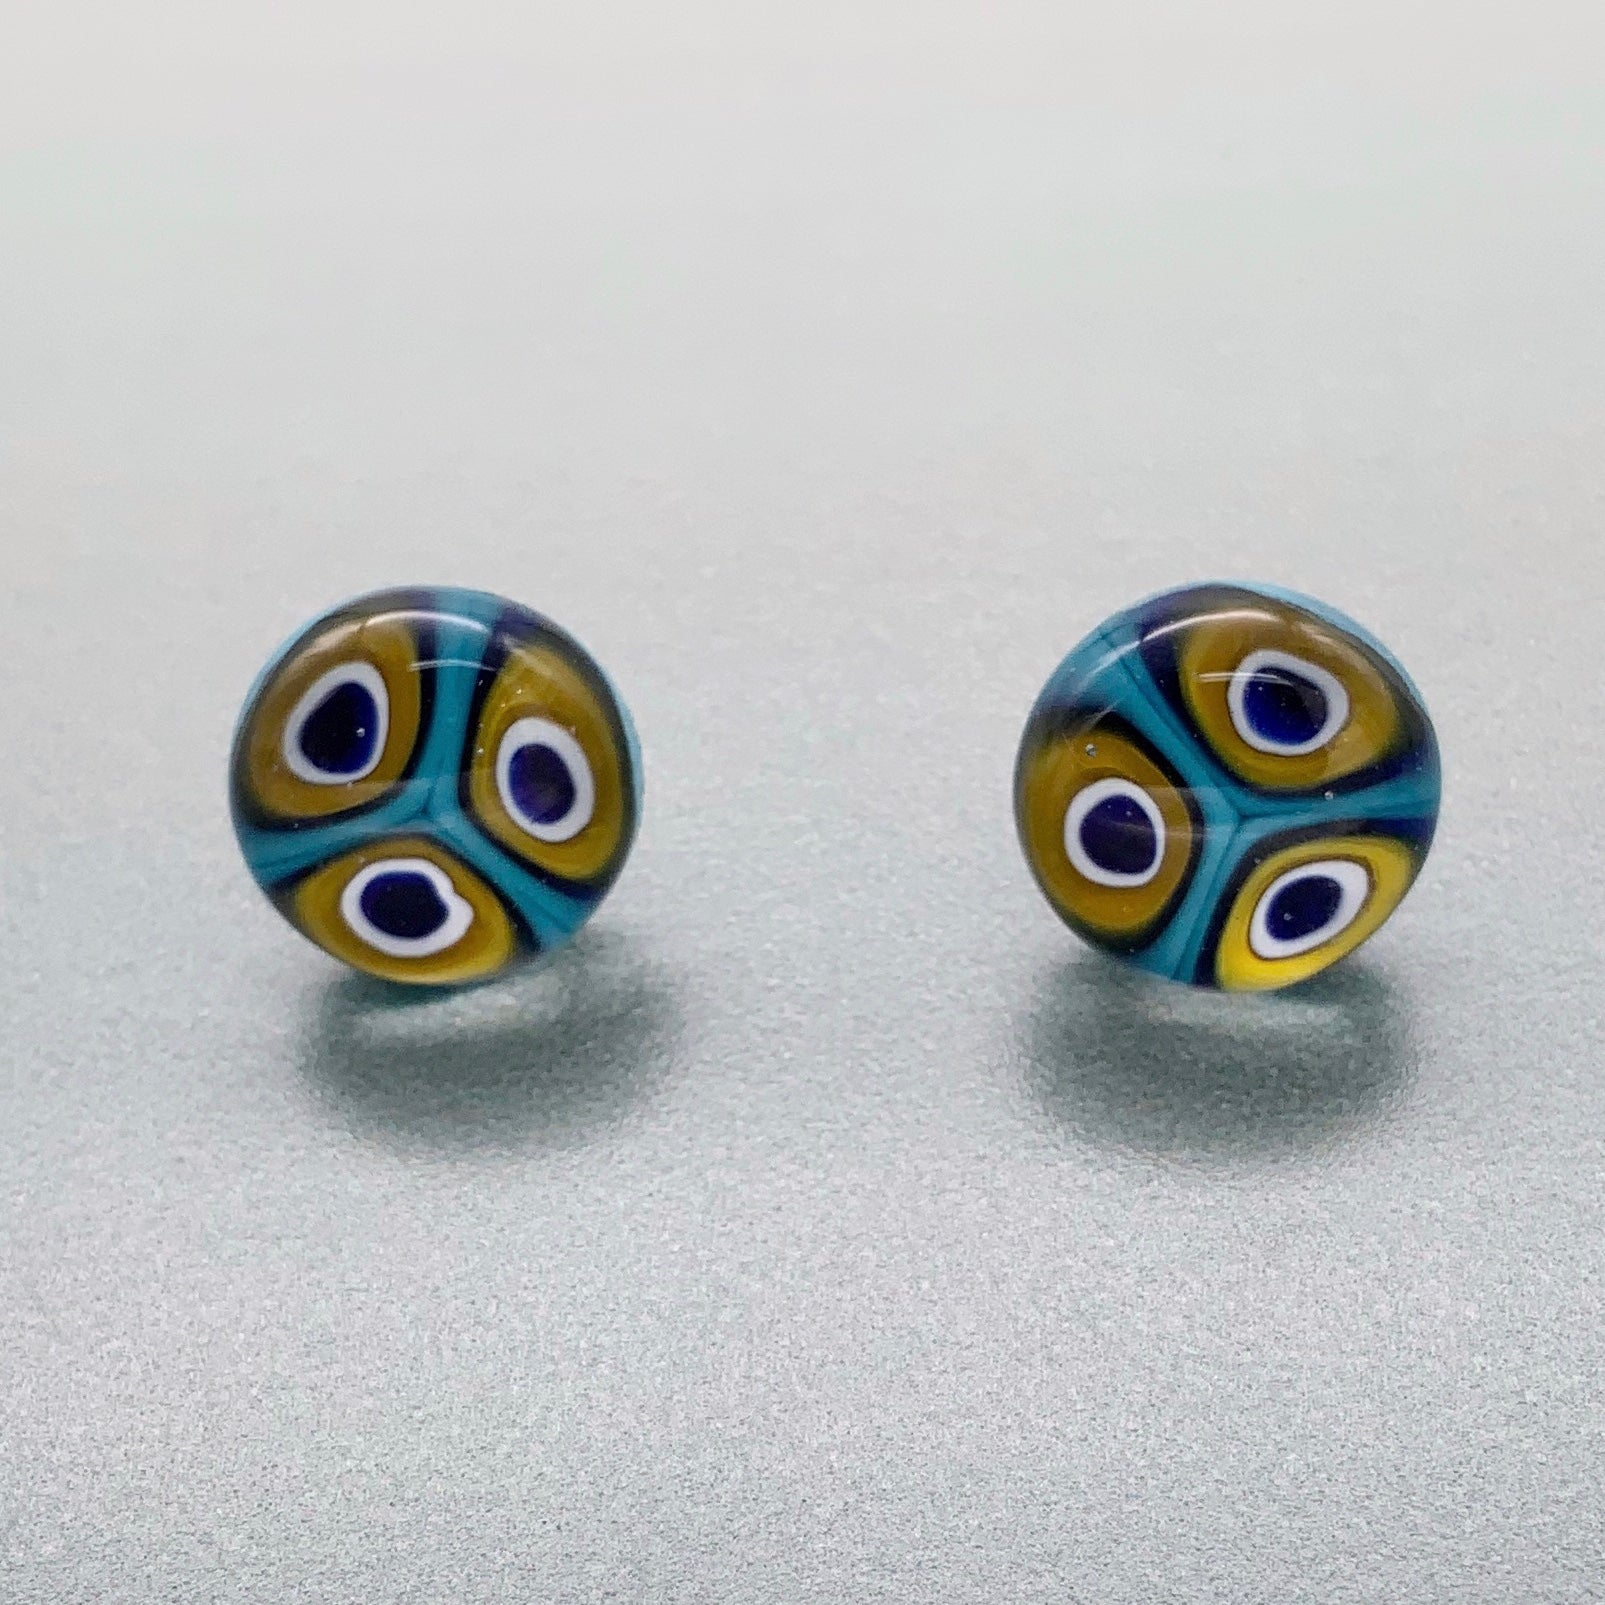 Peacock inspired glass stud earrings